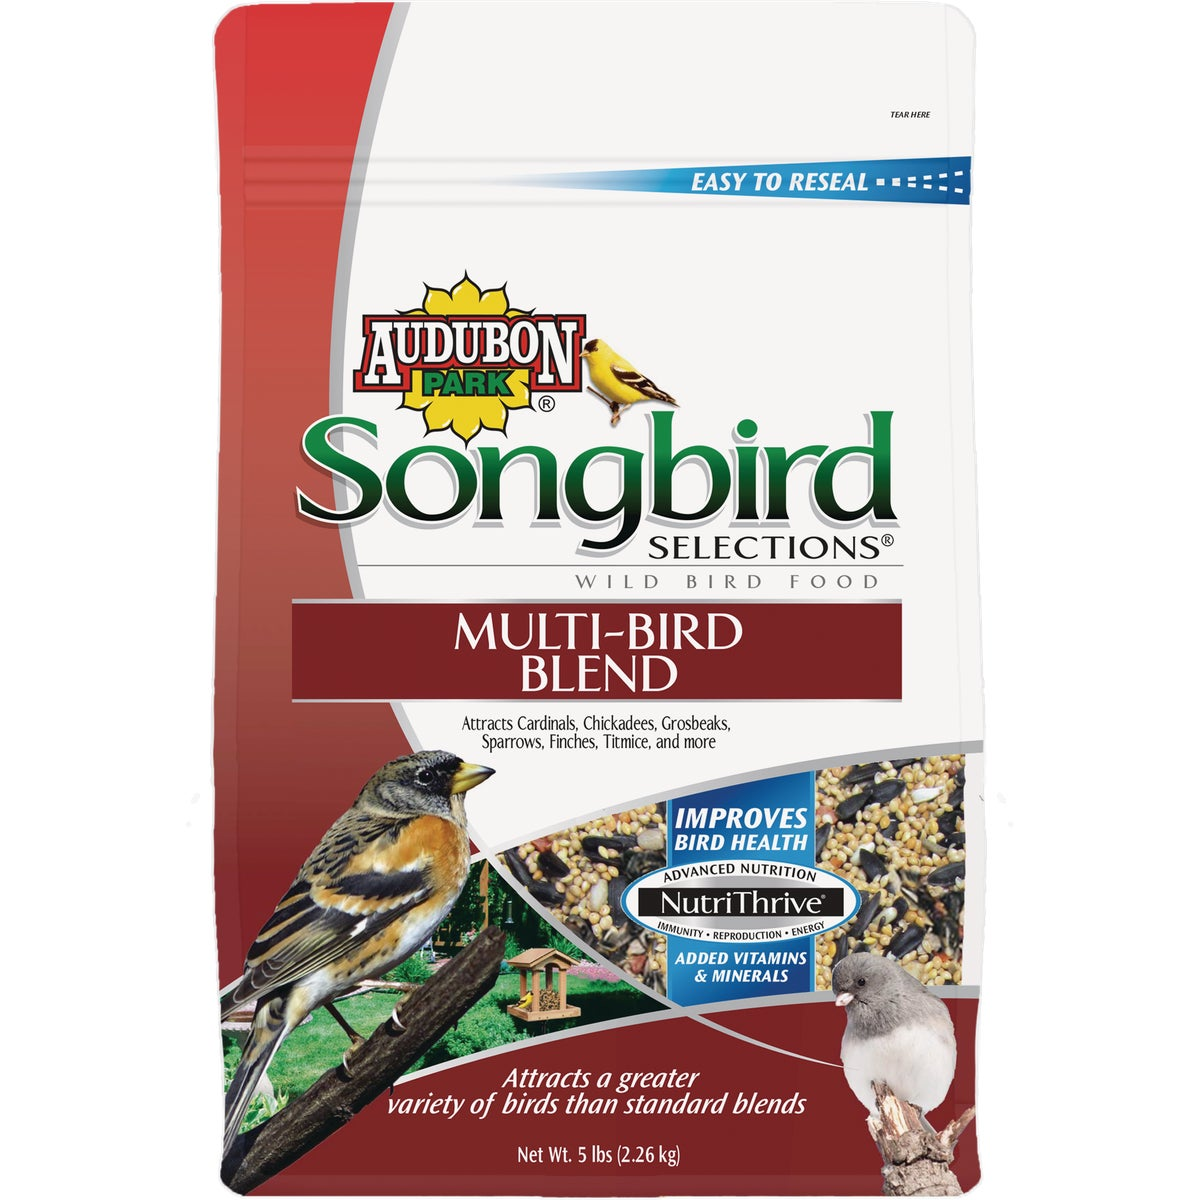 5LB WILD BIRD BLEND - 1022680 by Scotts Songbird